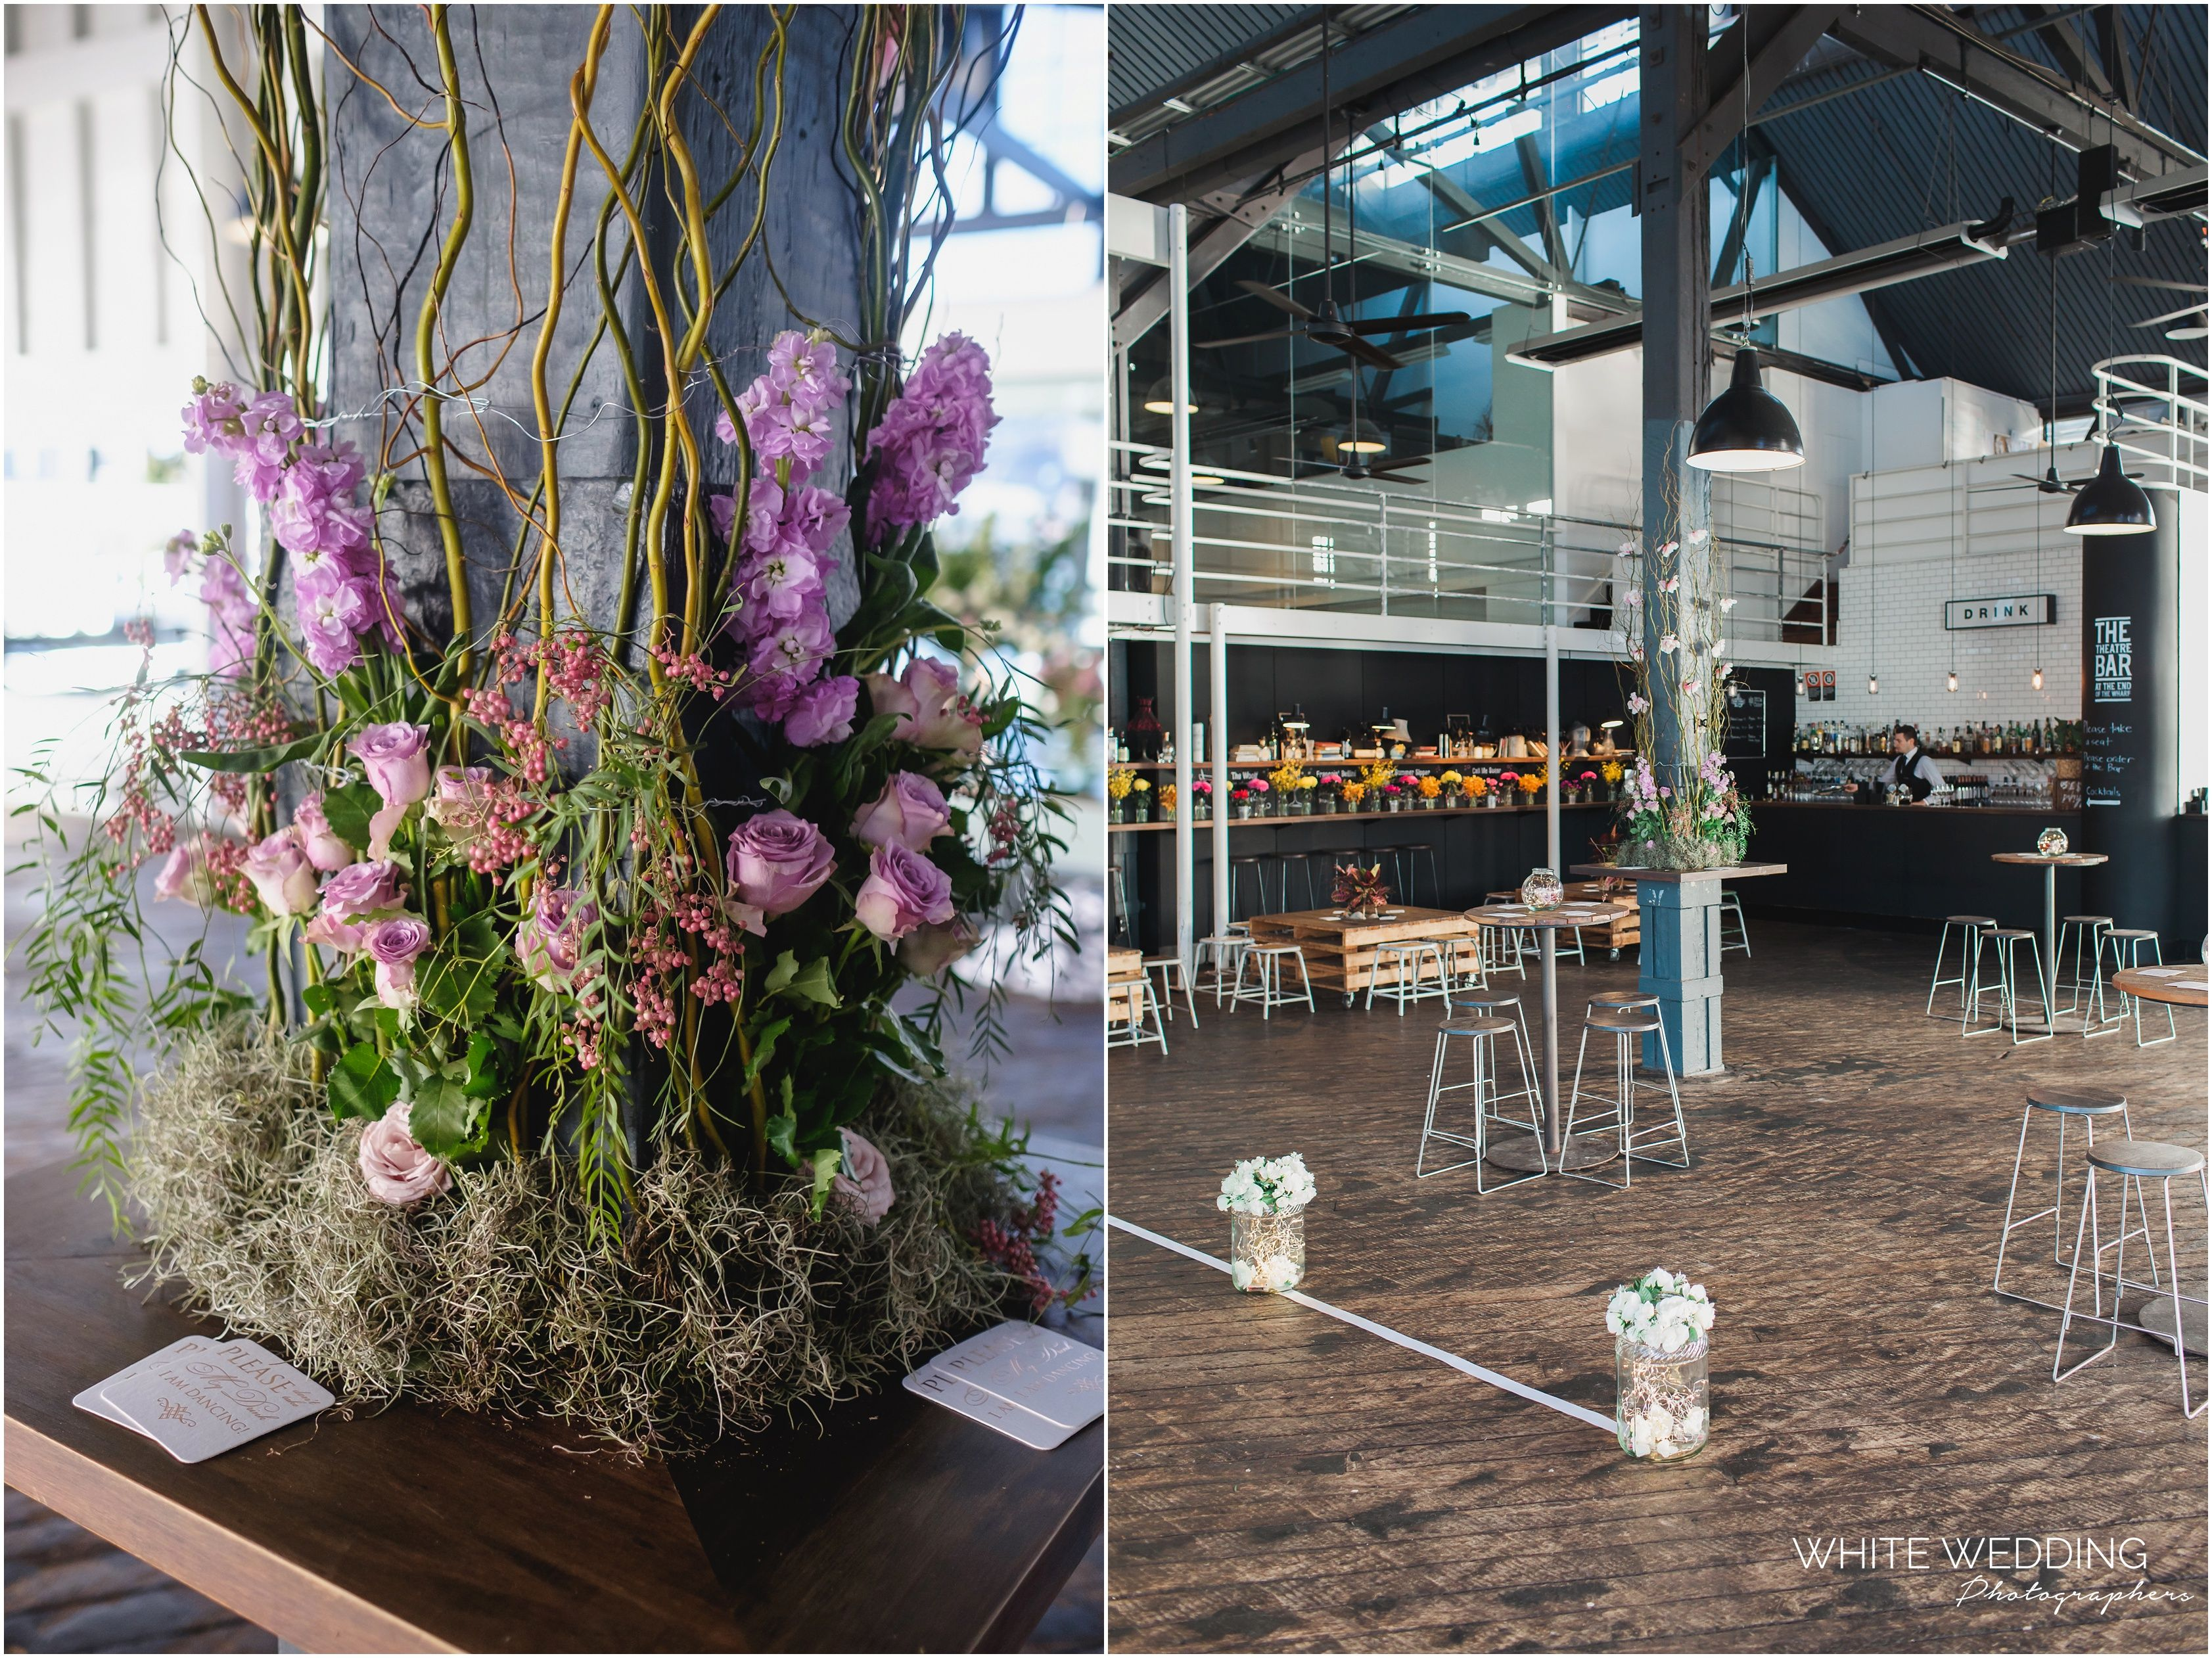 Amanda Amber S Stylish Wedding At The Theatre Bar End Of Wharf Located Within Sydney Dance Company With Magnificent Harbour